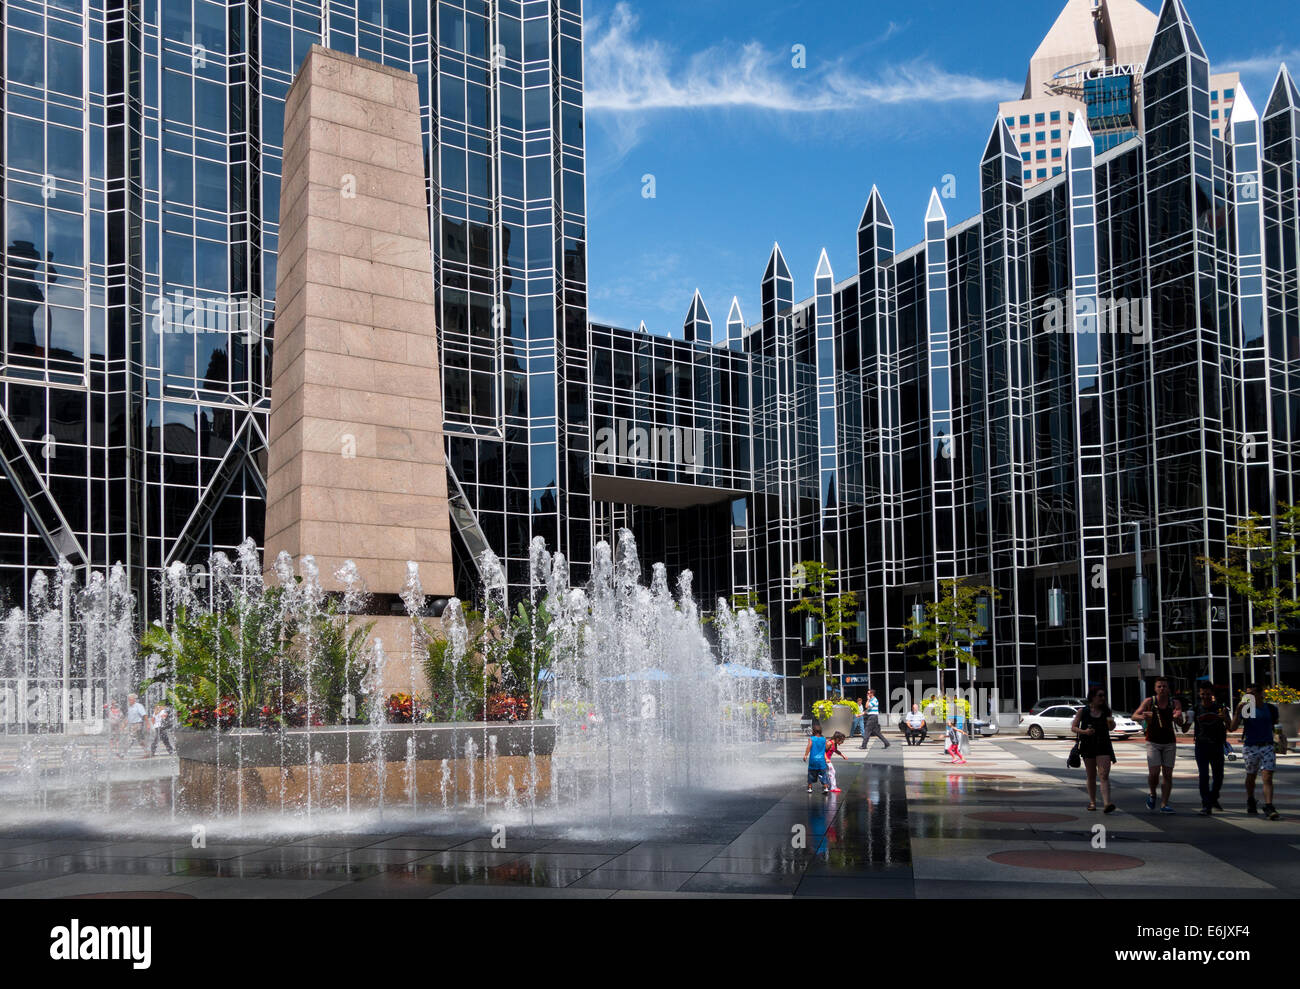 ppg place stock photos u0026 ppg place stock images alamy